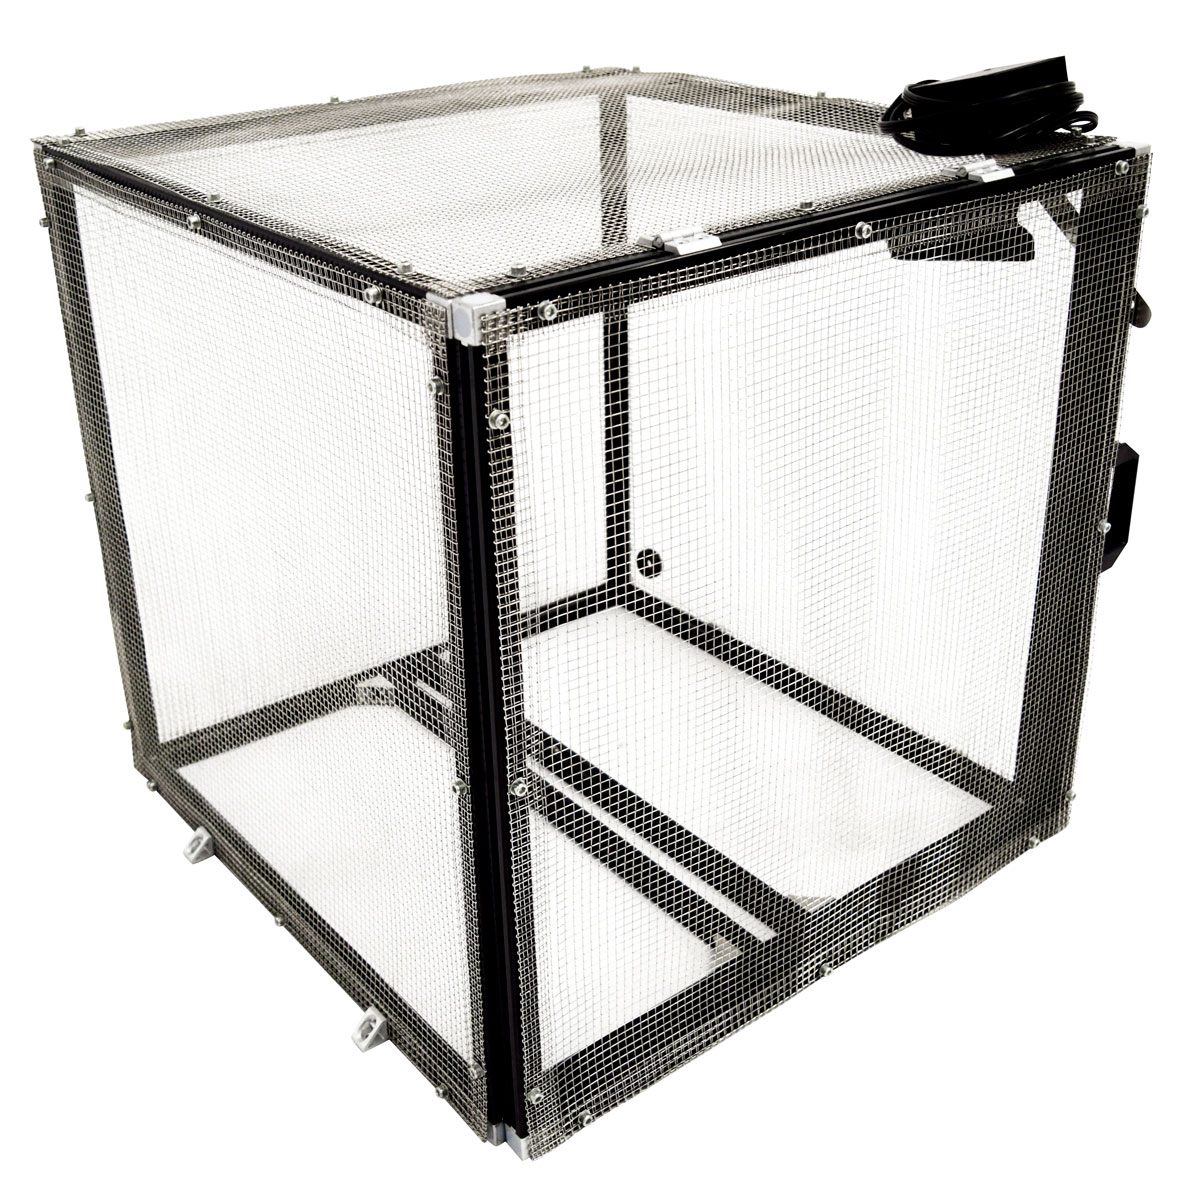 RCbenchmark security cage